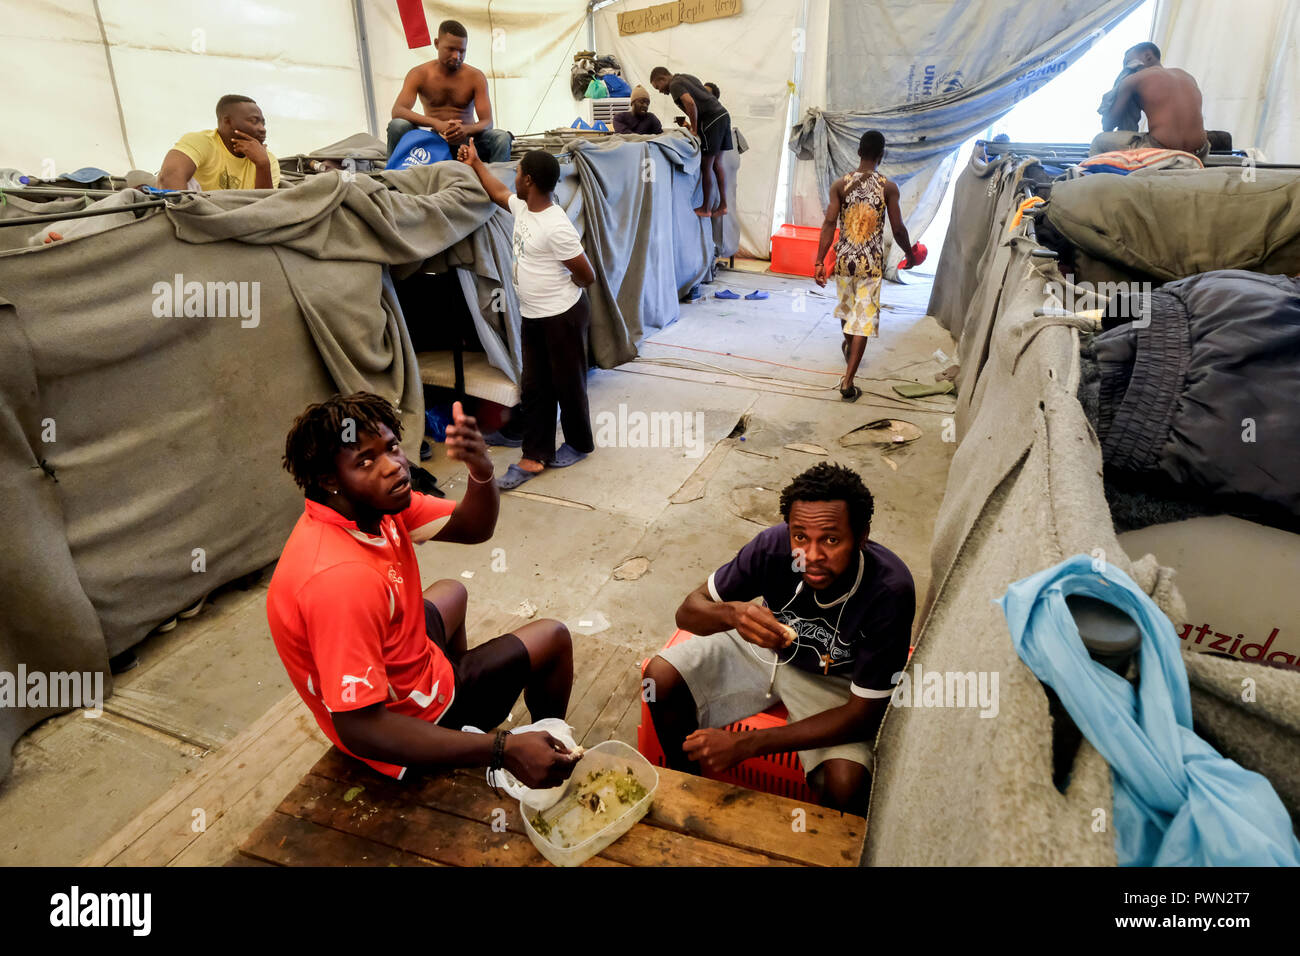 Refugees from Africa in a the next to MORIA-CAMP for refugees who came over by boats from nearby Turkey. Island of Lesbos, Greece, May 2018 - Stock Image